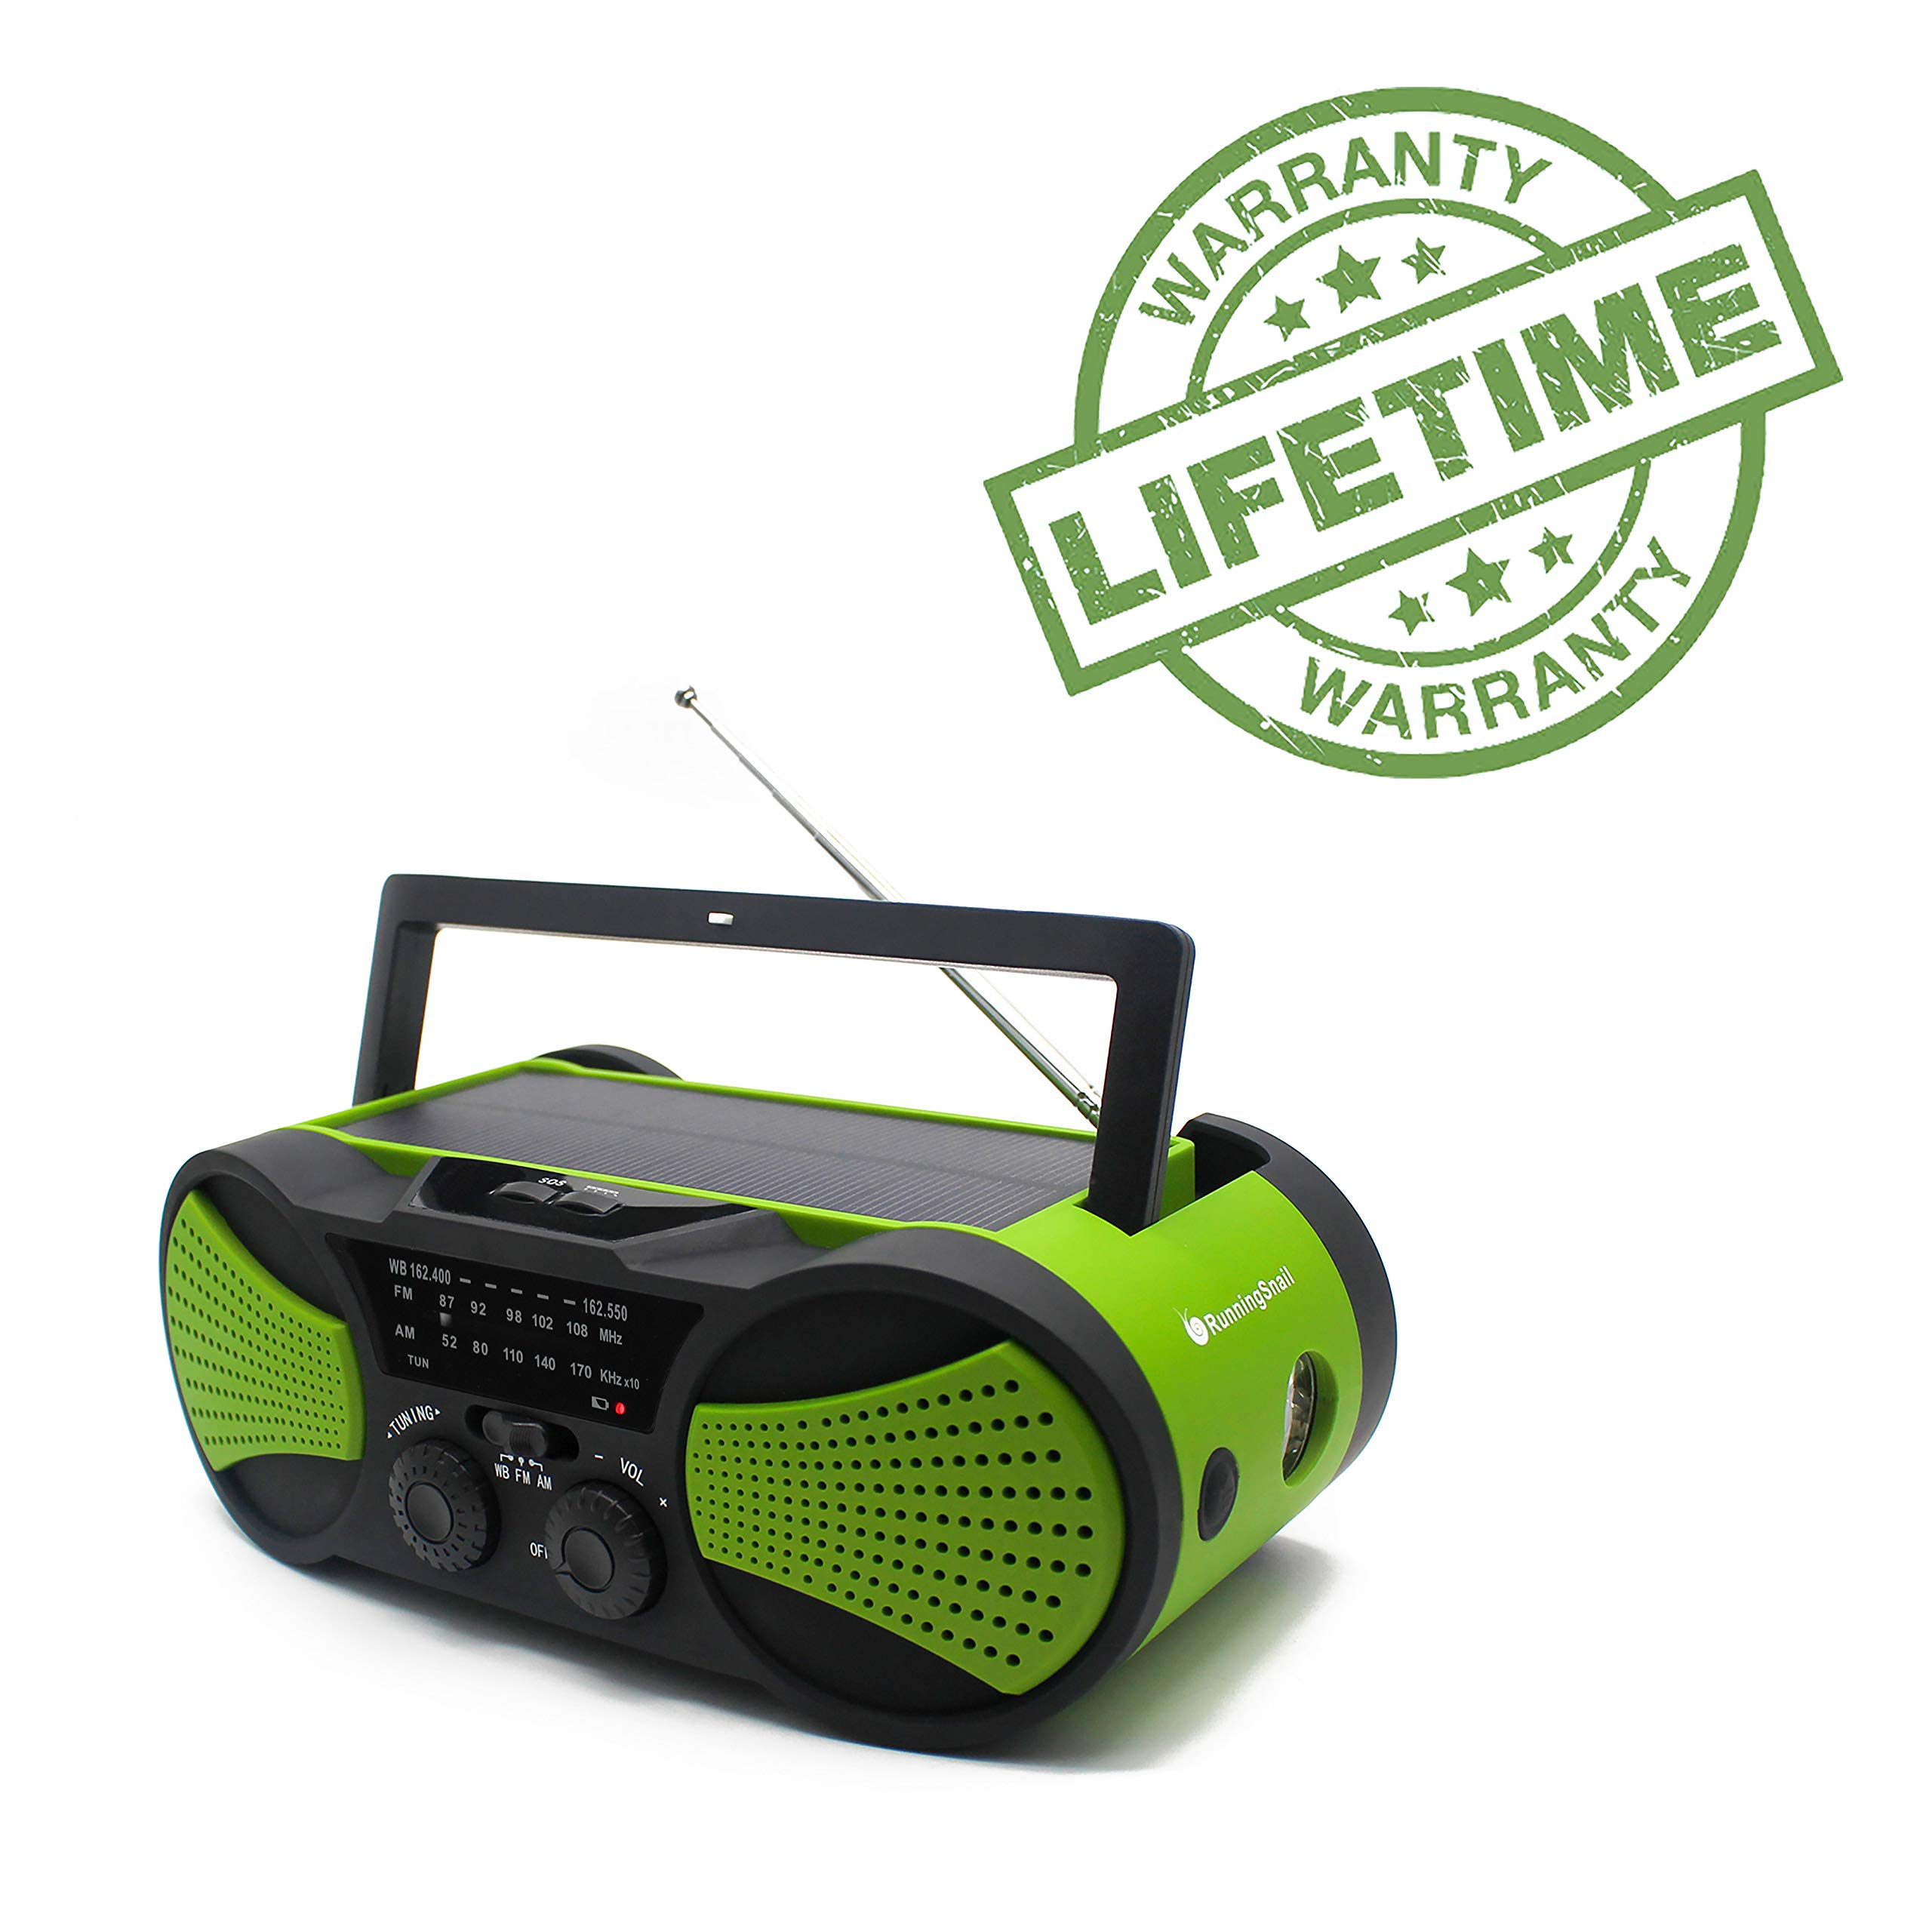 Emergency Crank NOAA Weather Radio, Audio Speaker, RunningSnail AM/FM 4-Way Powered Radio with 4000mAh Battery, LED Flashlight, Reading Lamp, SOS Alarm and Cellphone Charger (Green) by RunningSnail